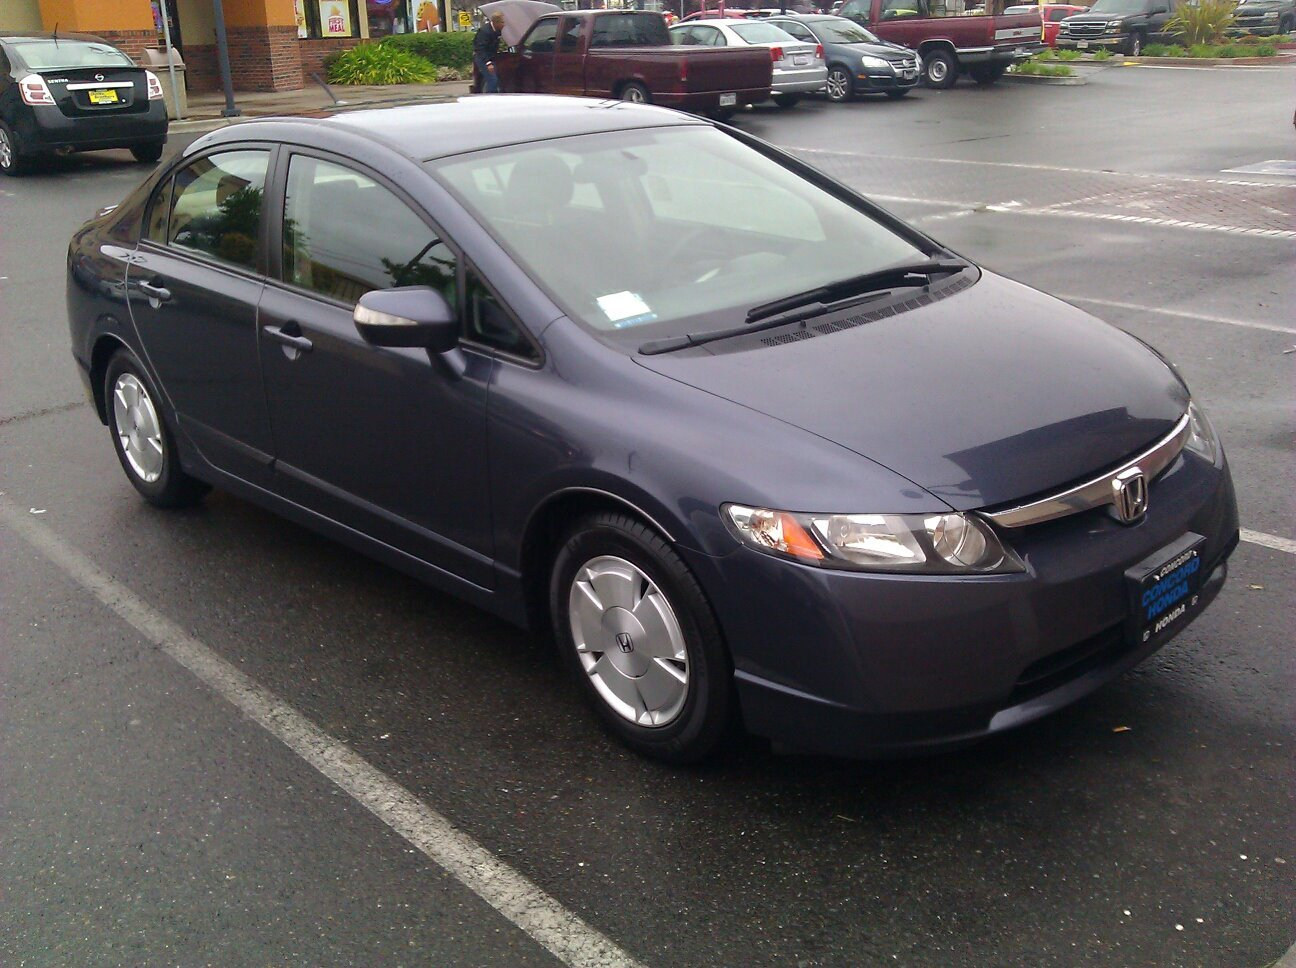 Changing Rims Tires On Civic Hybrid Help 471935 3515518888034 1406270254 O Jpg